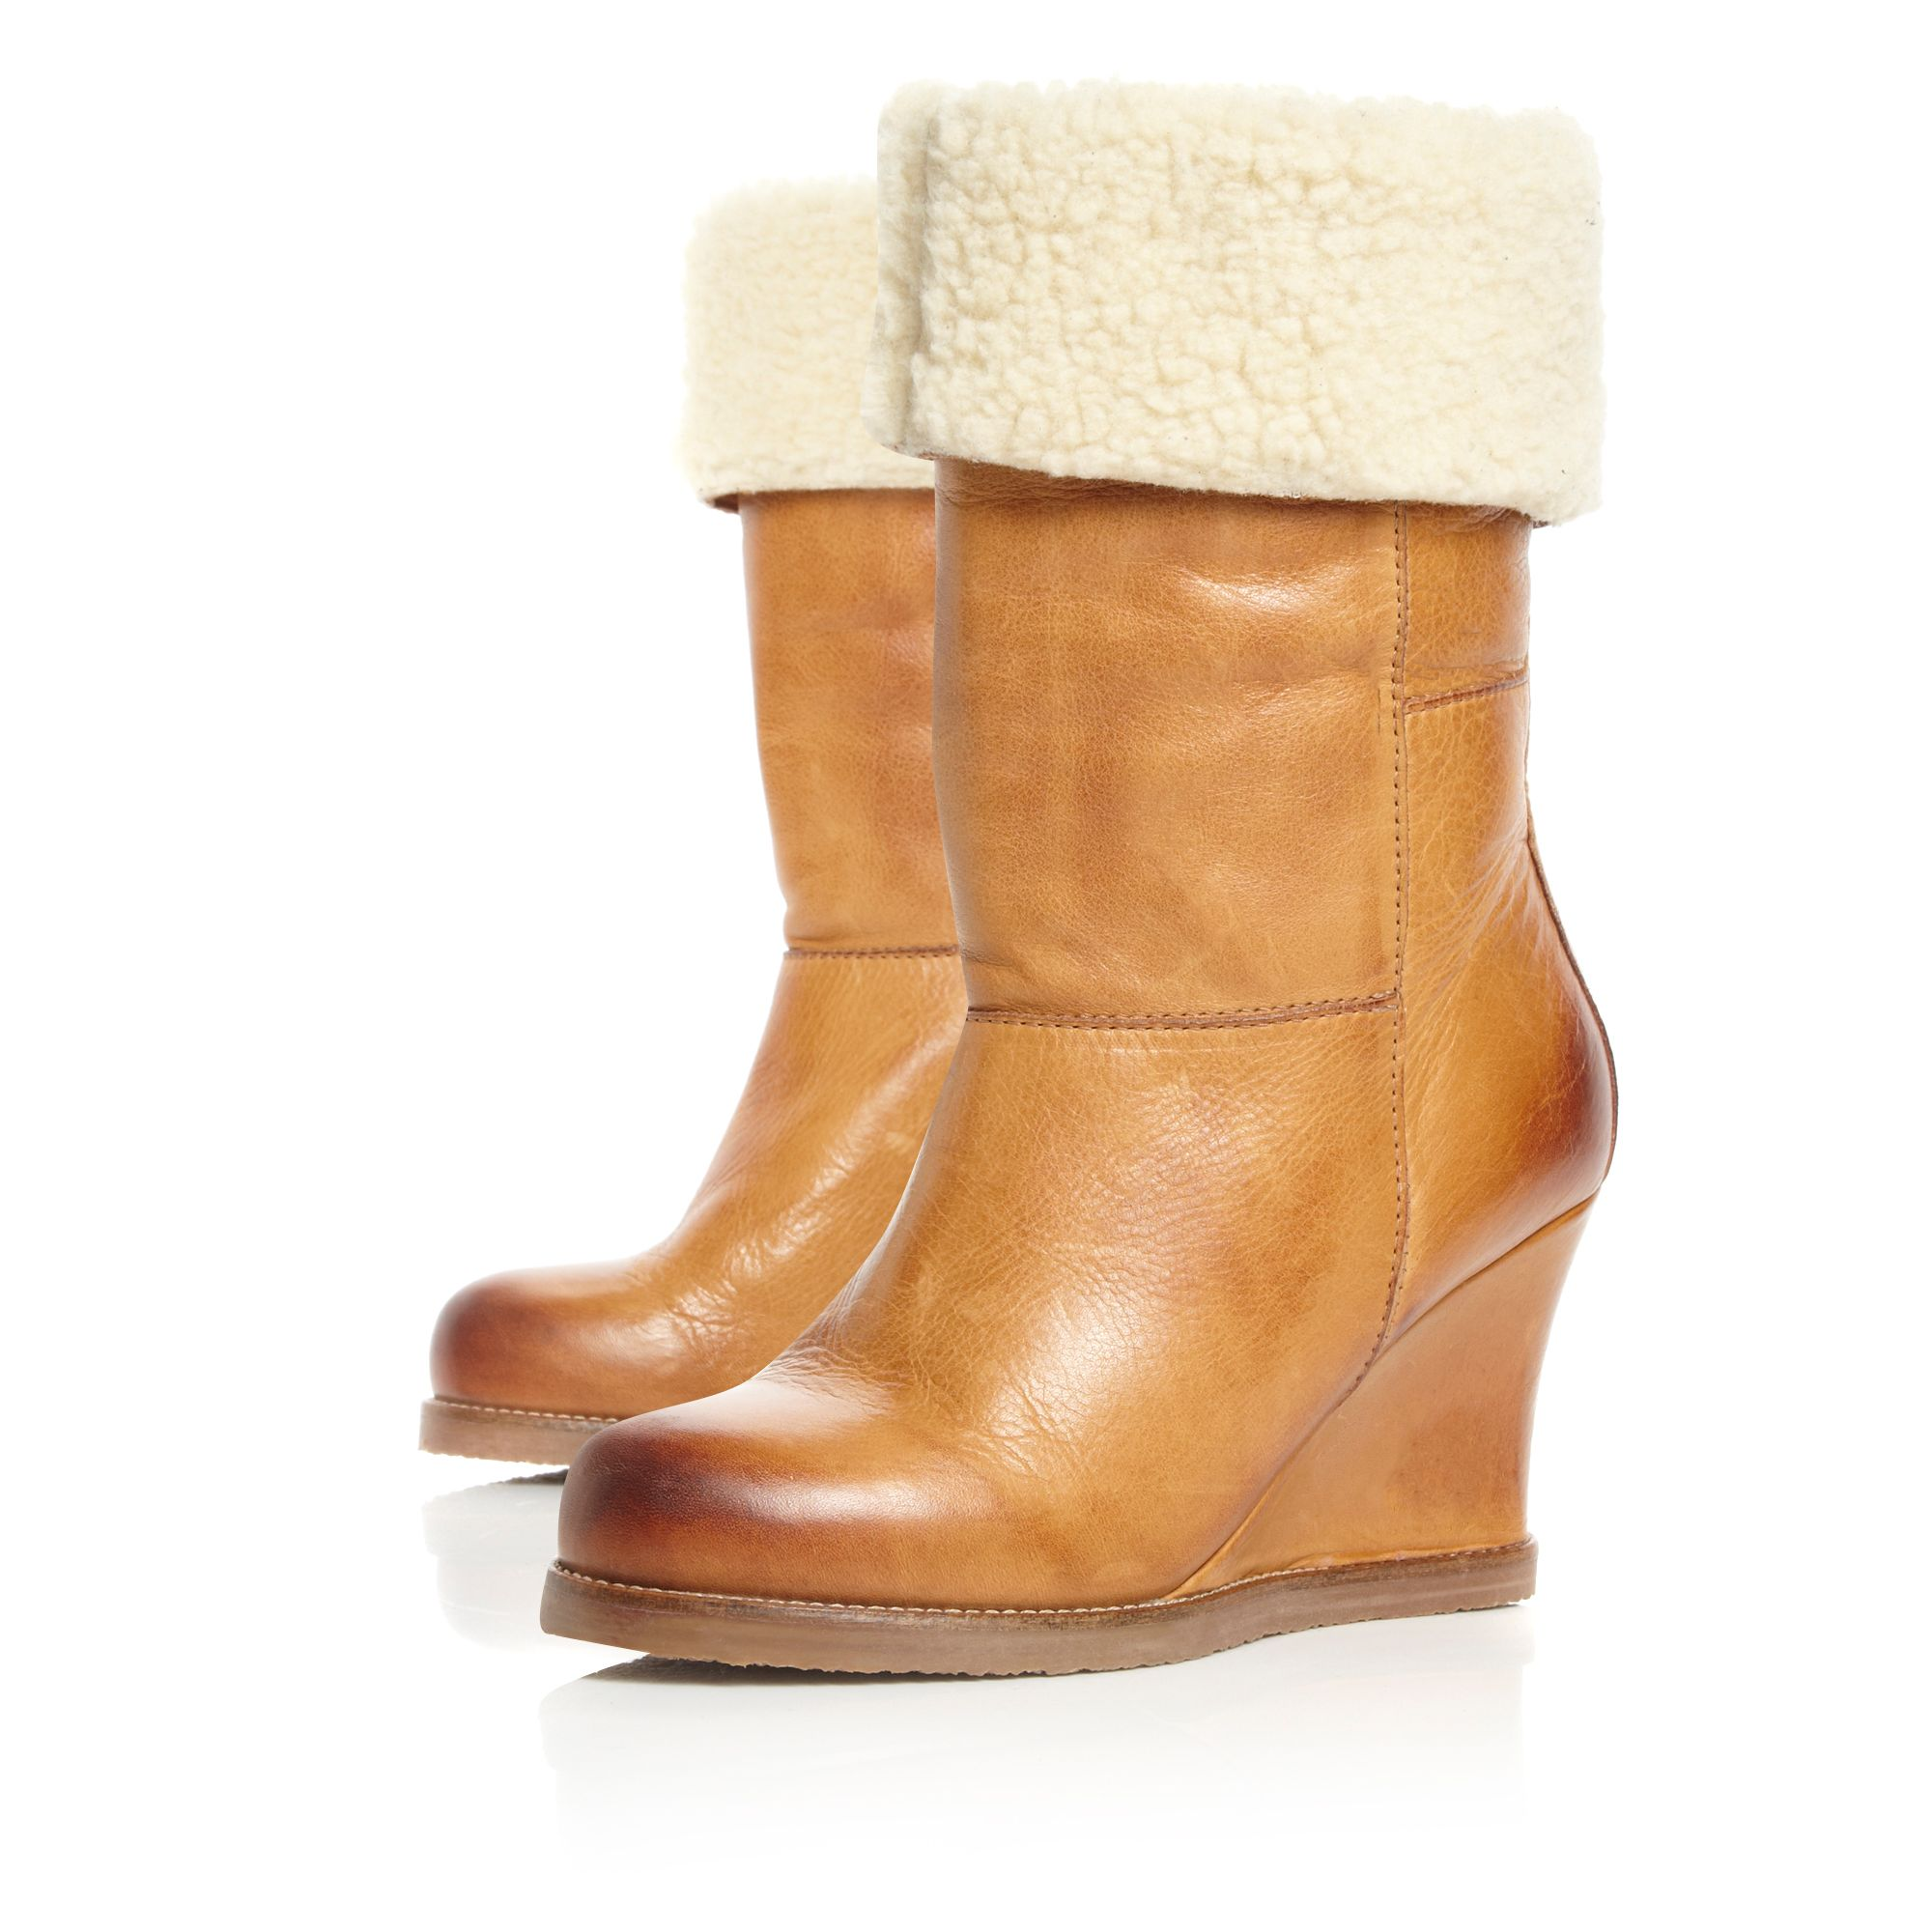 Rocha Faux Fur Crepe Sole Wedge Boots